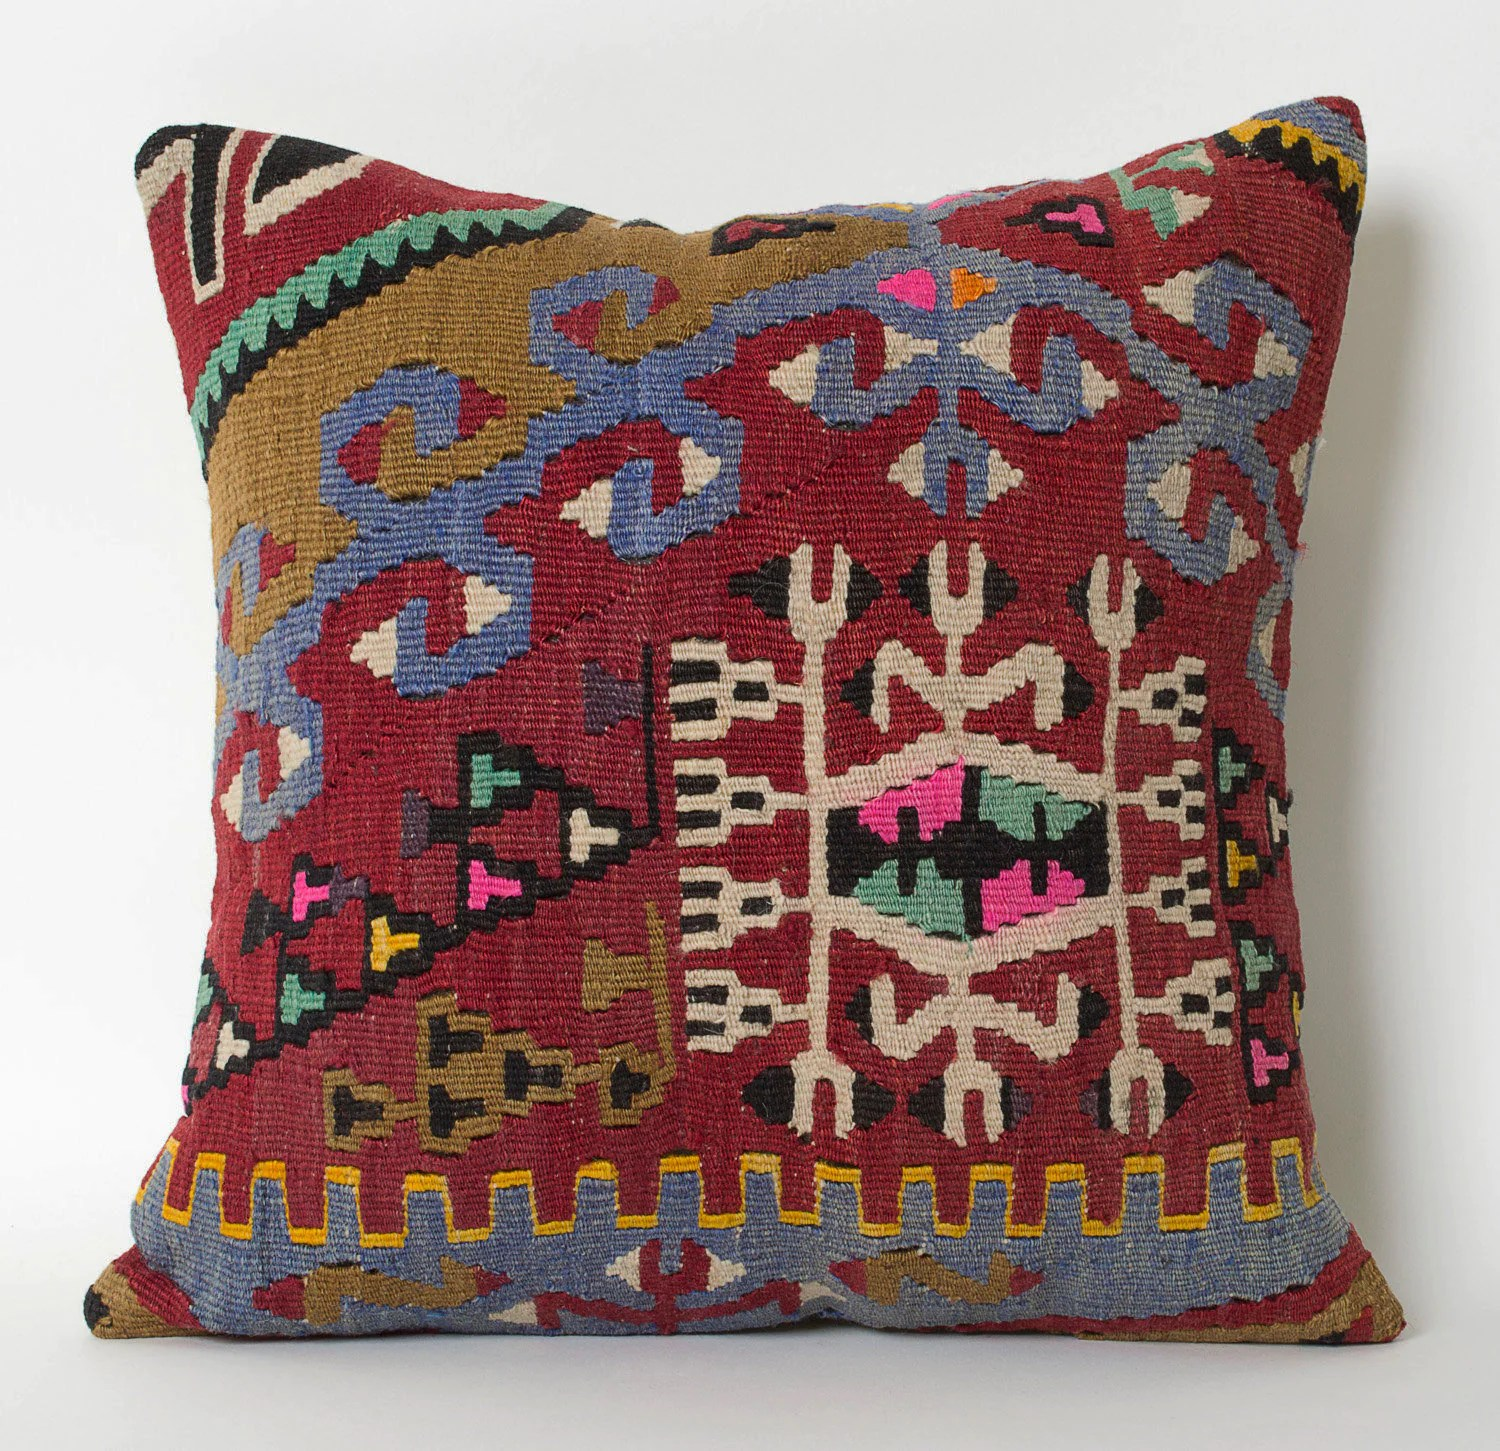 Kilim Paris Persian Rug Pillow Cushion Cover Kilim Pillow Case Boho Pillow Antique Pillow Anatolian Pillow Carpet Pillow Kilim Cushion Tribal Red Blue